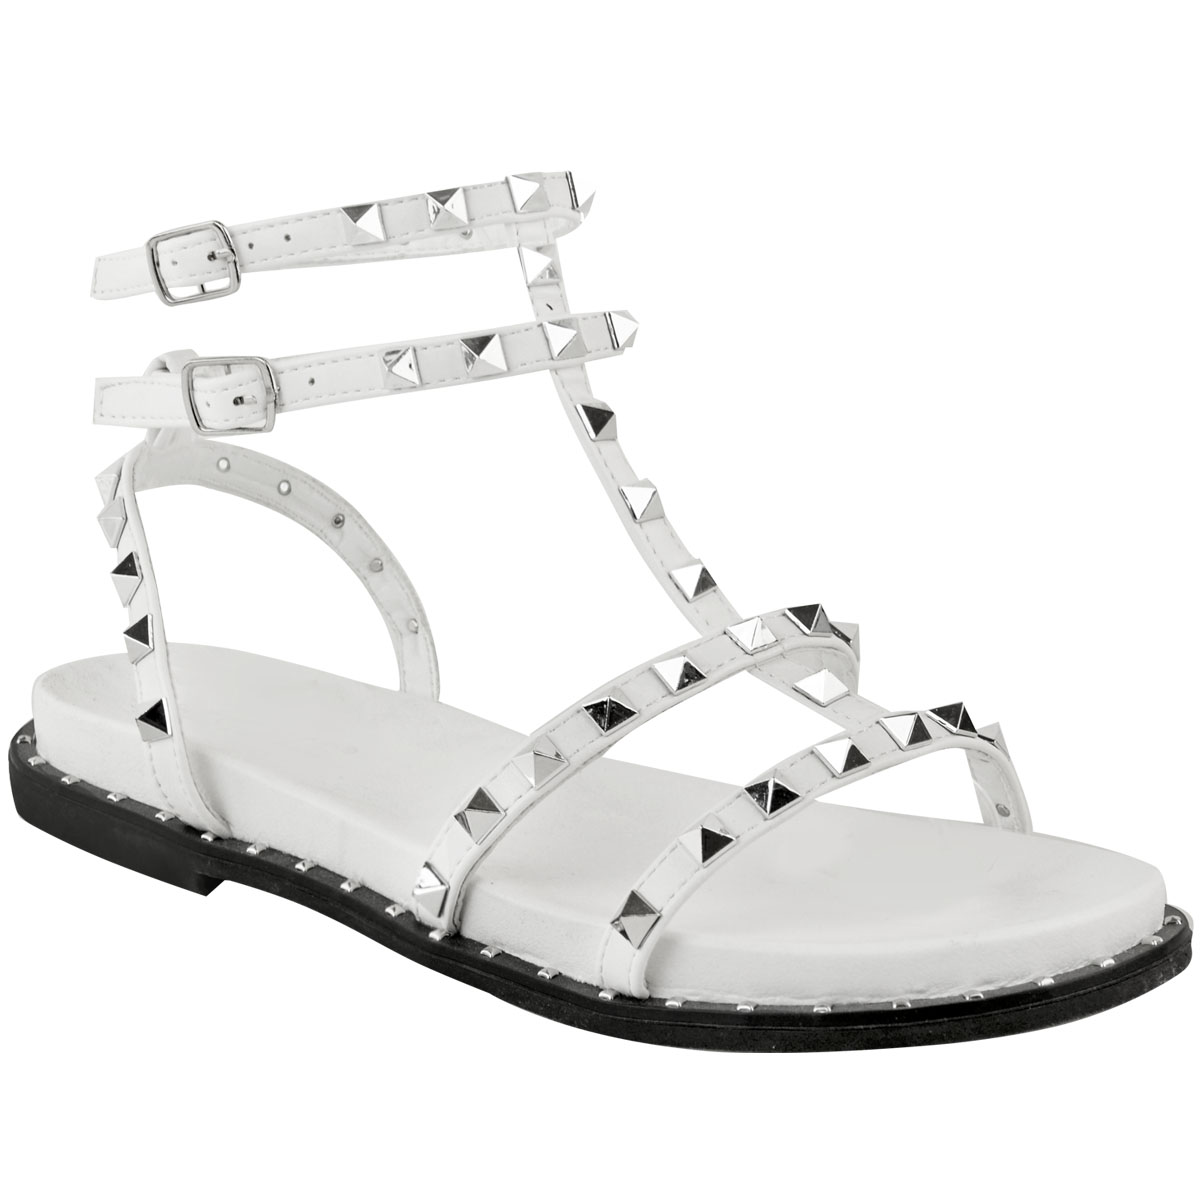 Details about Womens Ladies Flat Studded Sandals Summer Strappy Embellished Rock Shoes Size UK